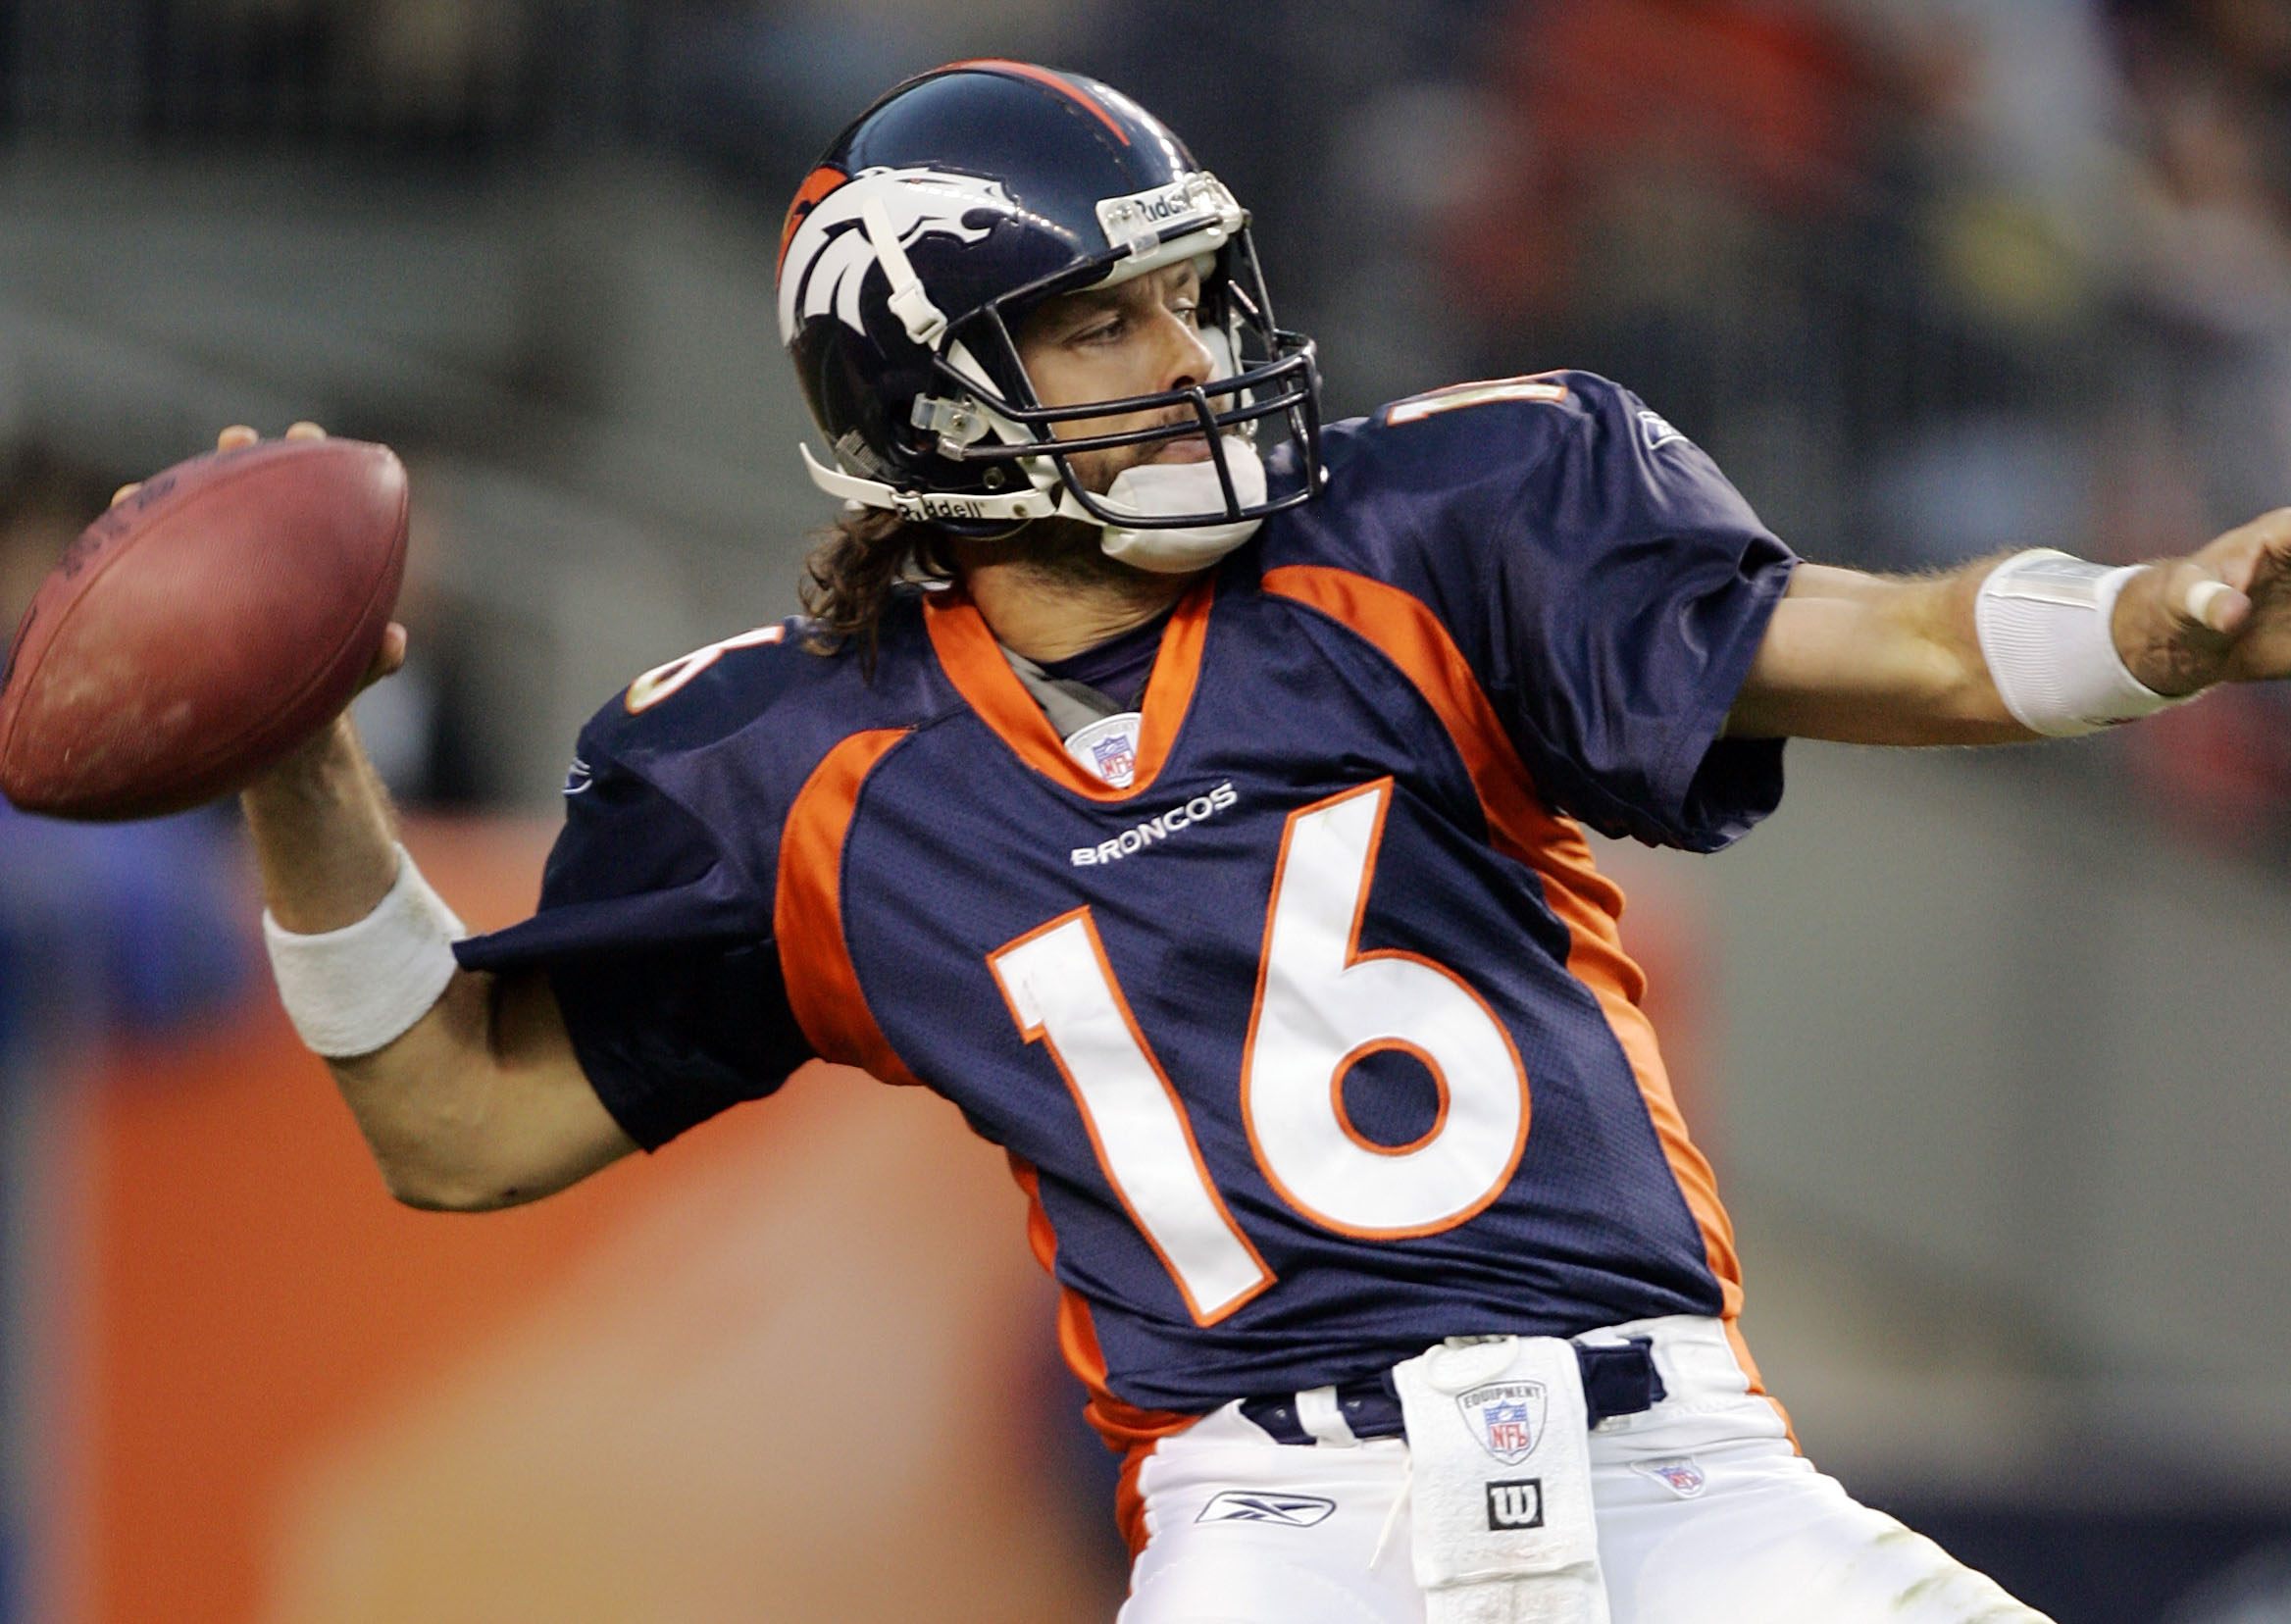 Jake Plummer in 2005 (Photo by Brian Bahr/Getty Images)